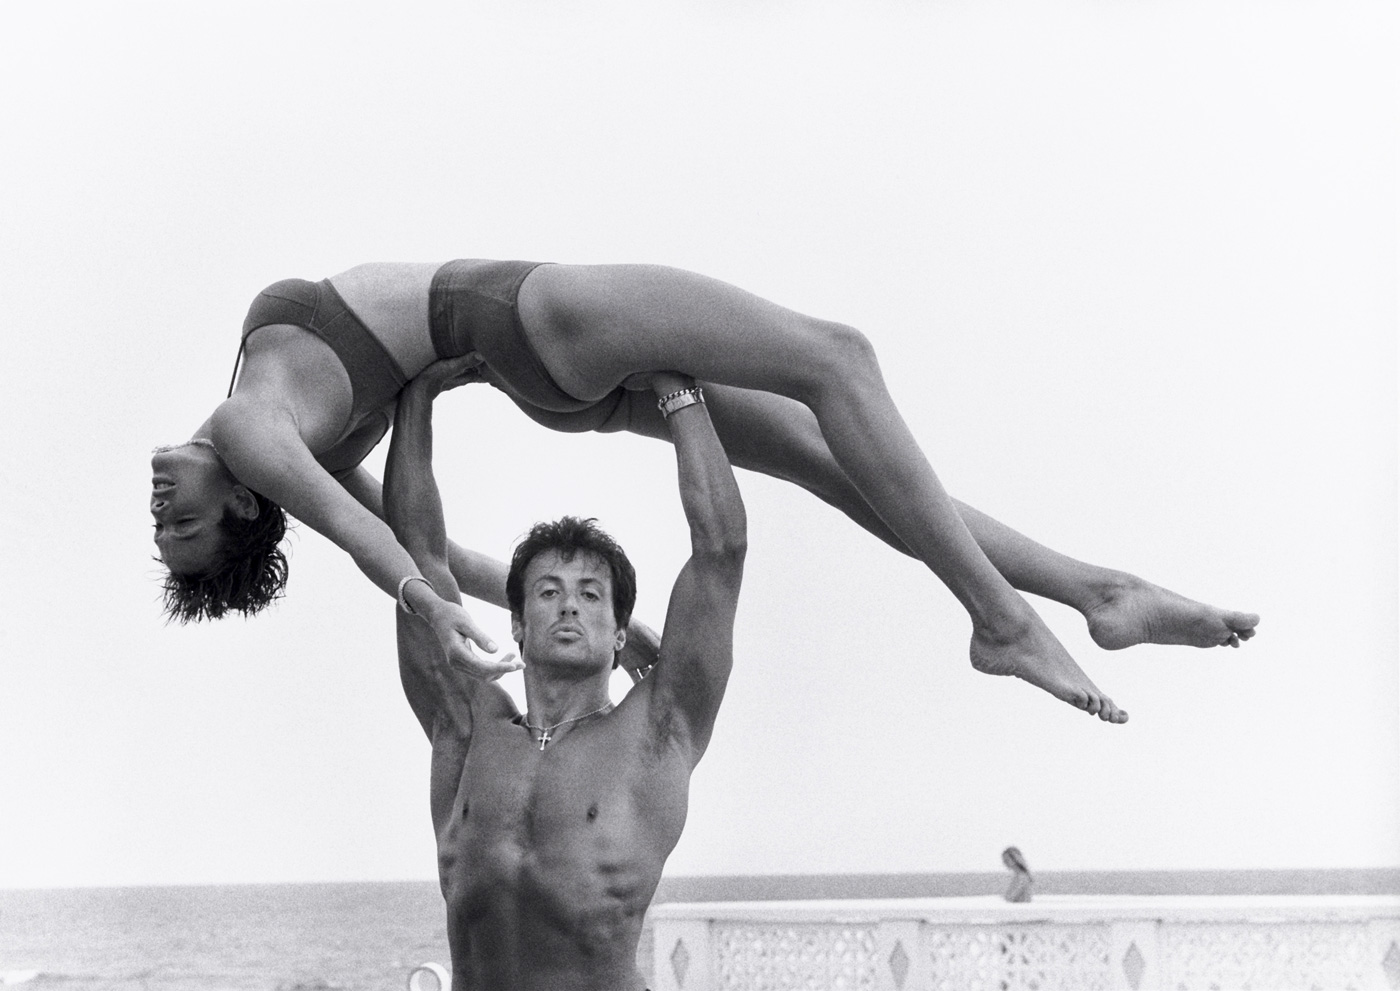 Herb Ritts  (American, 1952-2002)  Sylvester Stallone and Brigitte Nielsen, Long Island  1987 Gelatin silver print Museum of Fine Arts, Boston Gift of Herb Ritts Foundation in honor of Malcolm Rogers © Herb Ritts Foundation Photograph © Museum of Fine Arts, Boston